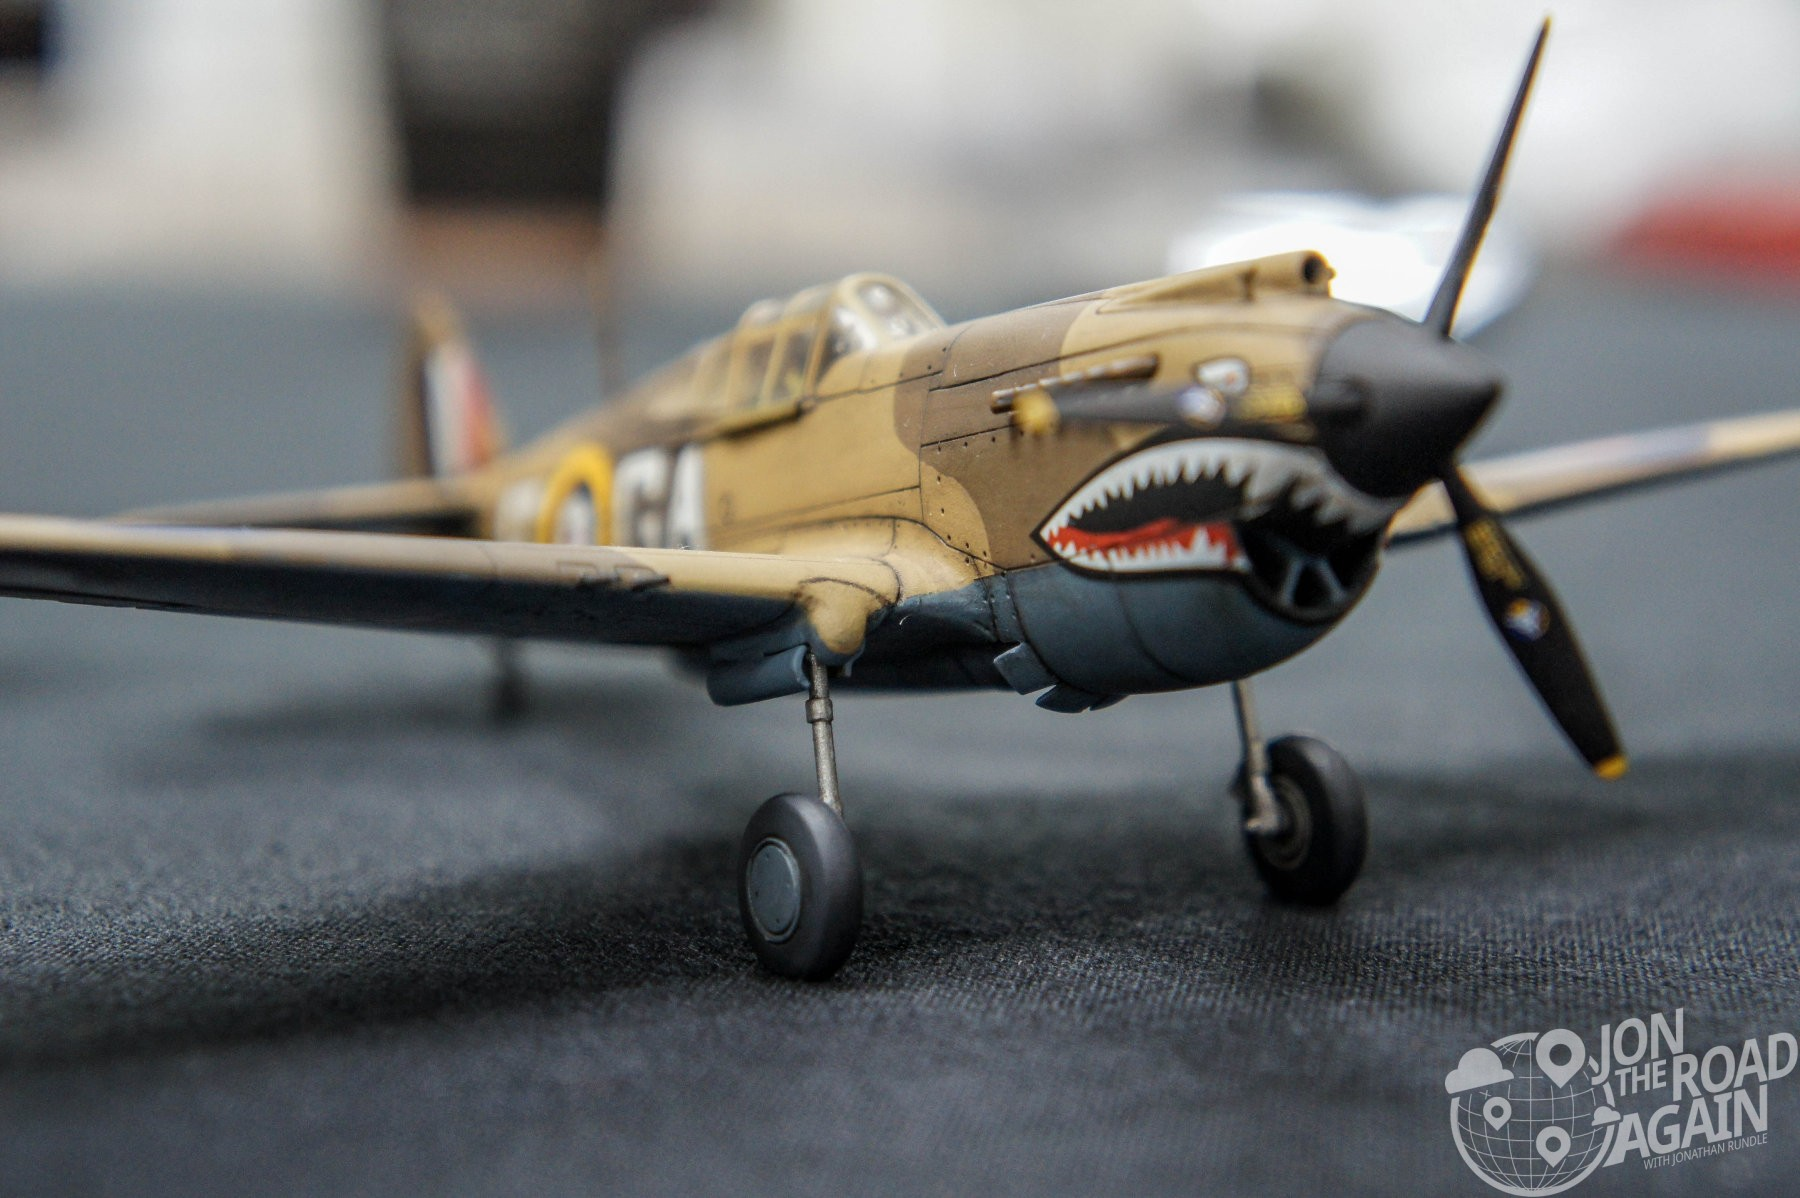 Model builders at Flying Heritage Collection